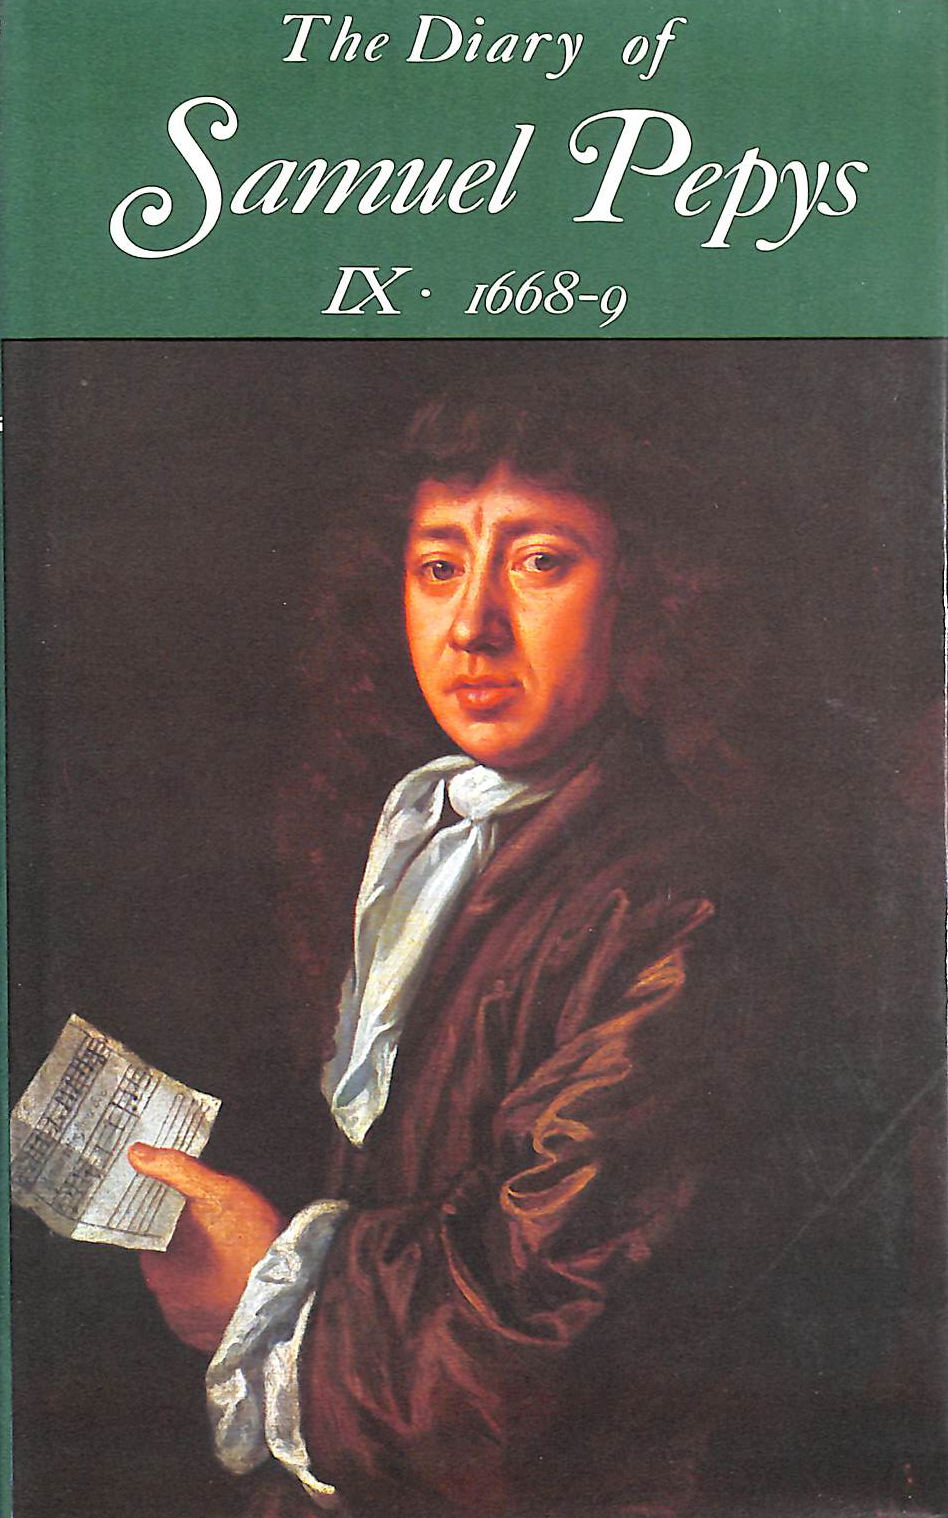 Image for The Diary of Samuel Pepys Volume IX 1668-9